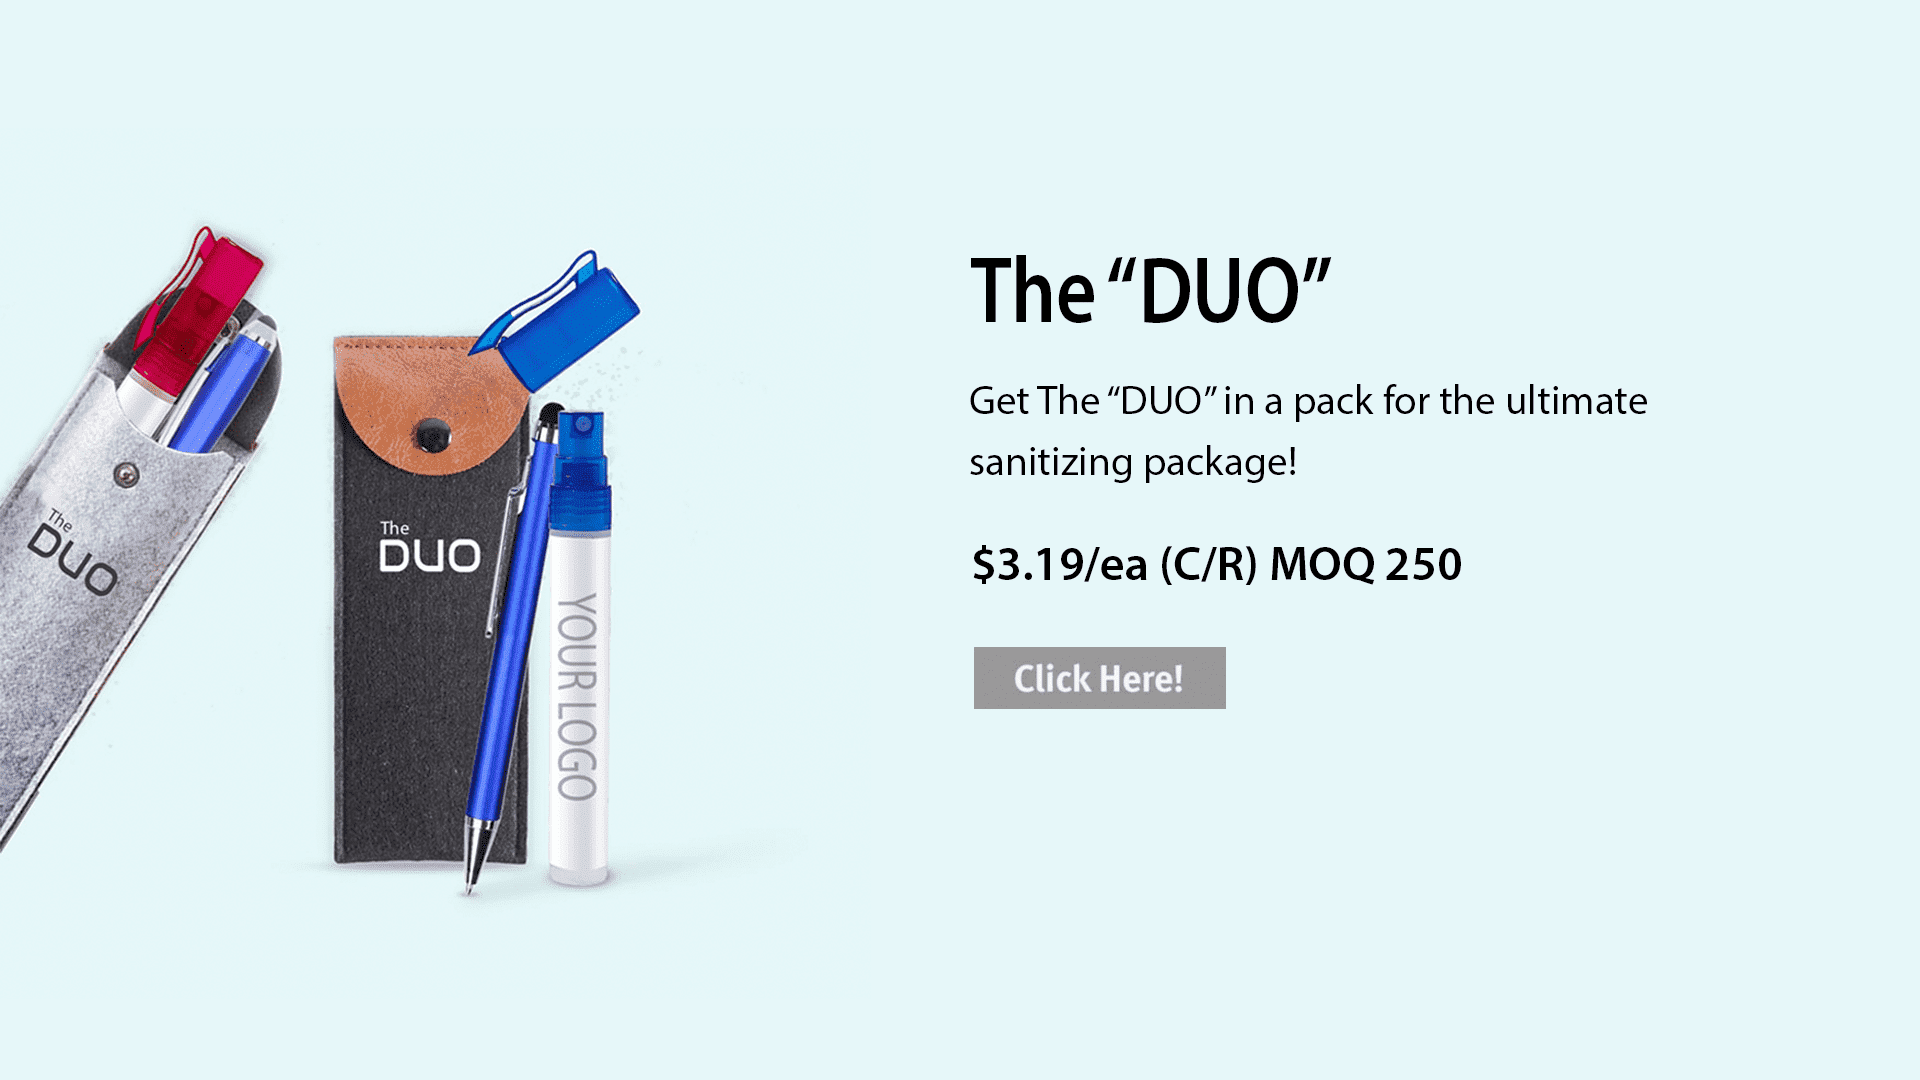 The DUO. The ultimate pack for disinfecting and sanitizing gadgets in public and when traveling.